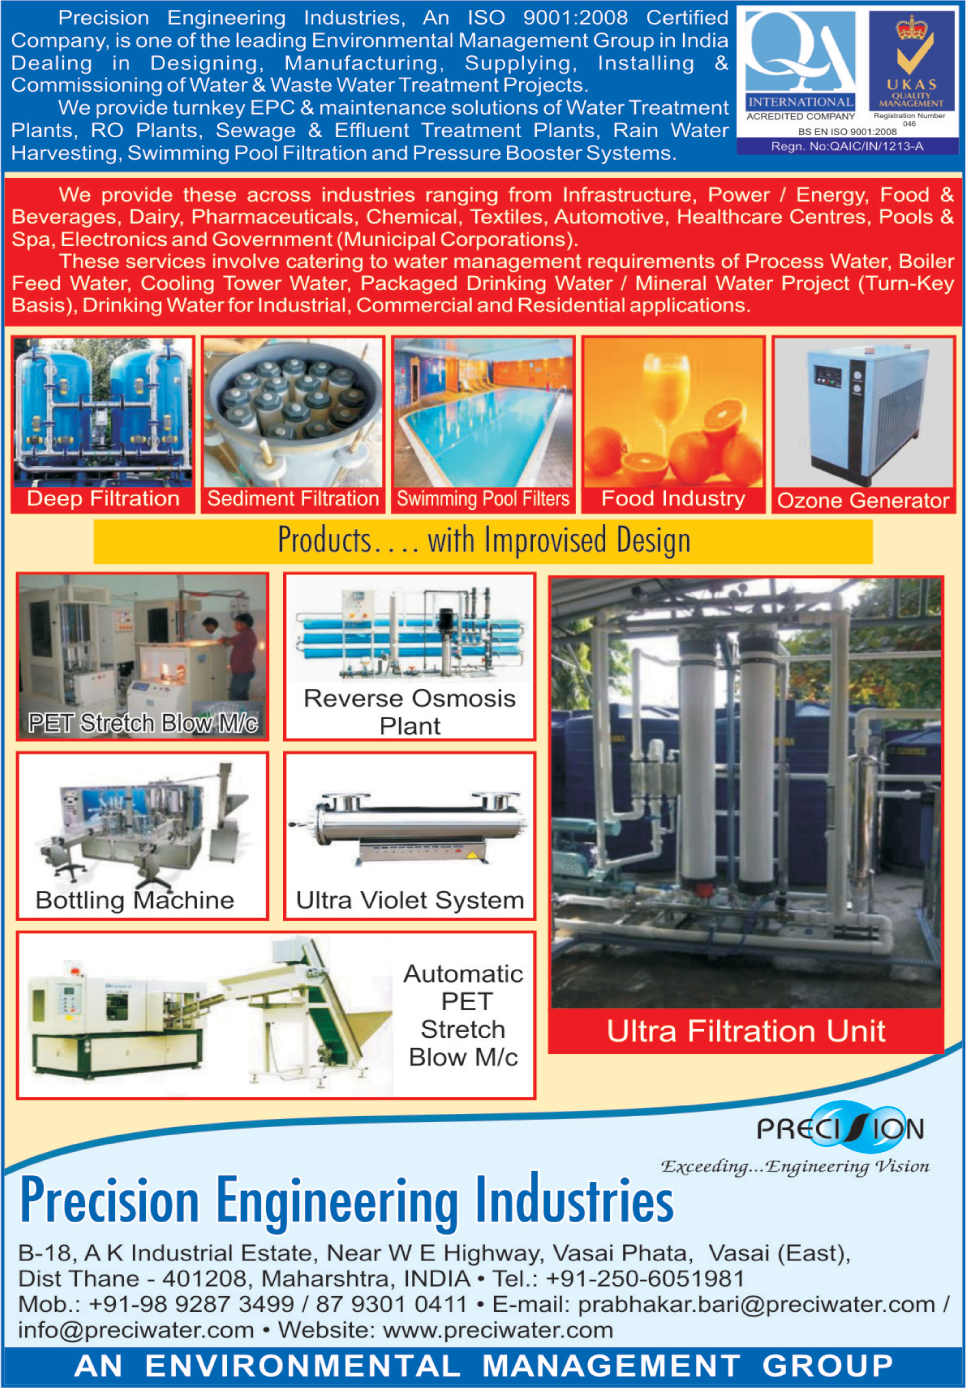 Dip Filtrations, Sediment Filtrations, Swimming Pool Filters, Packaged Drinking Water Turnkey Projects, Mineral Water Projects, Industrial Drinking Water Projects, Ozone Generators, Reverse Osmosis Plants, Bottling Machines, Pet Stretch Blow Machines, Bottling Machines, Ultraviolet Systems, Ultra Filtration Units